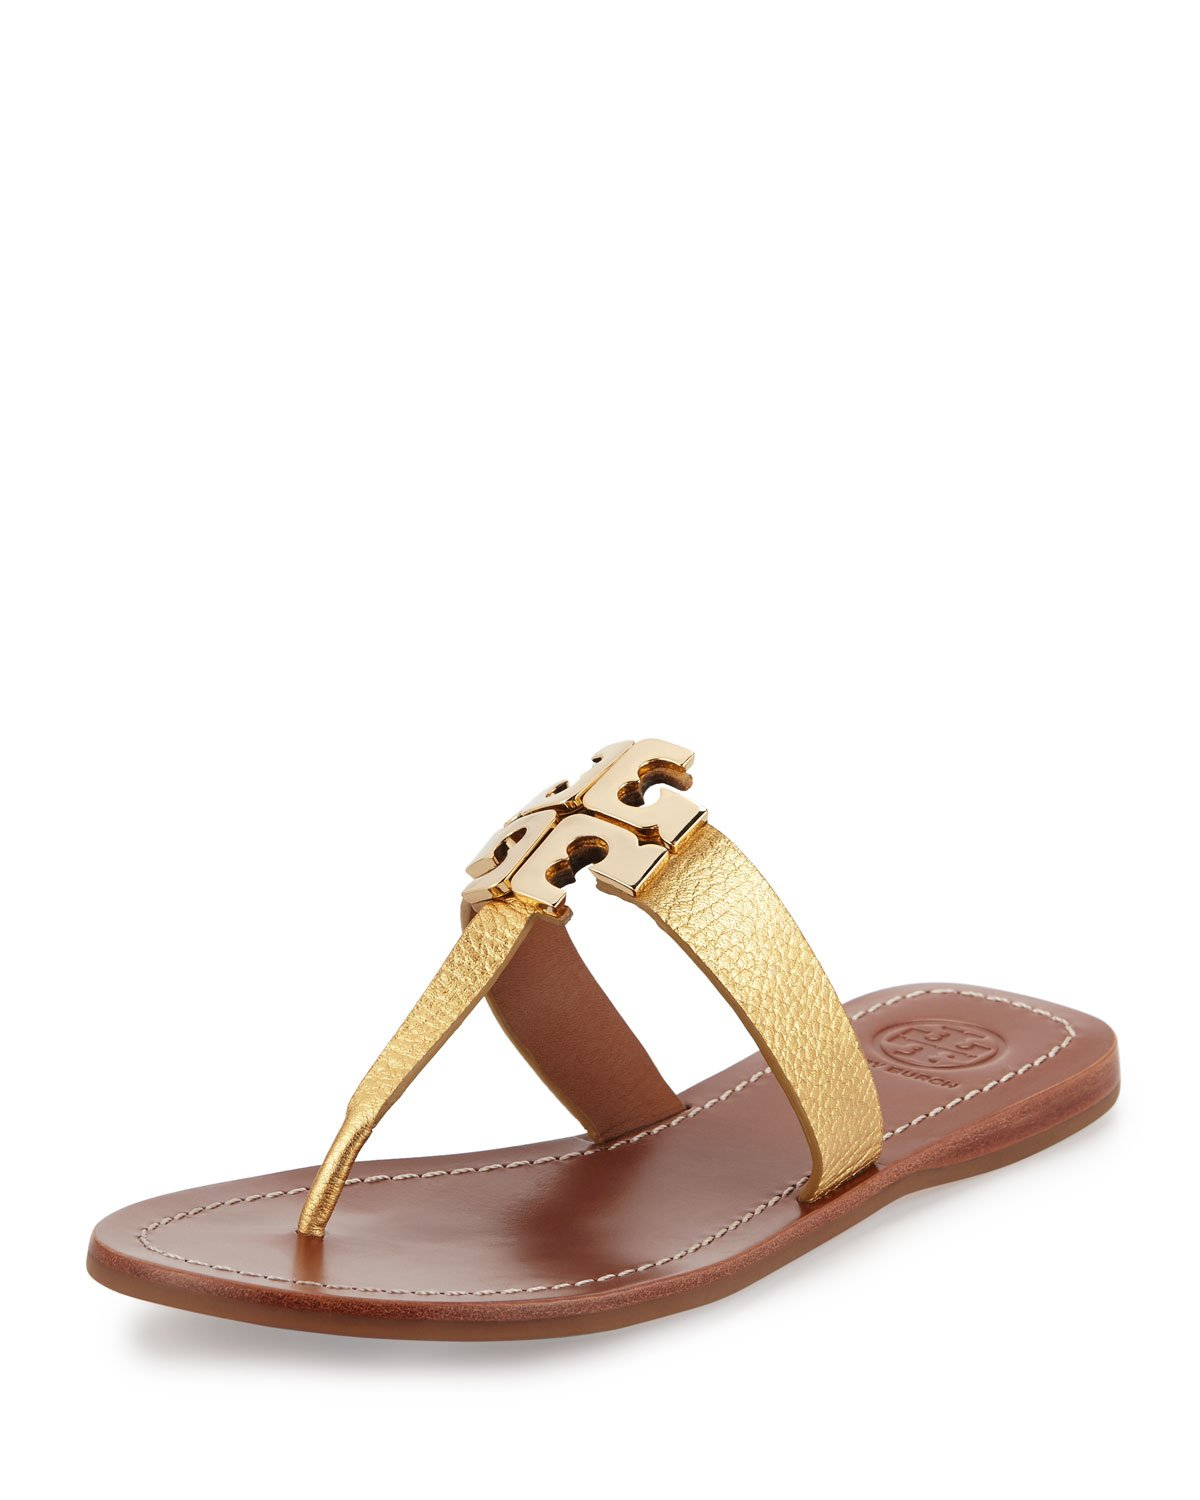 tory burch moore 2 flat leather thong sandal in metallic. Black Bedroom Furniture Sets. Home Design Ideas